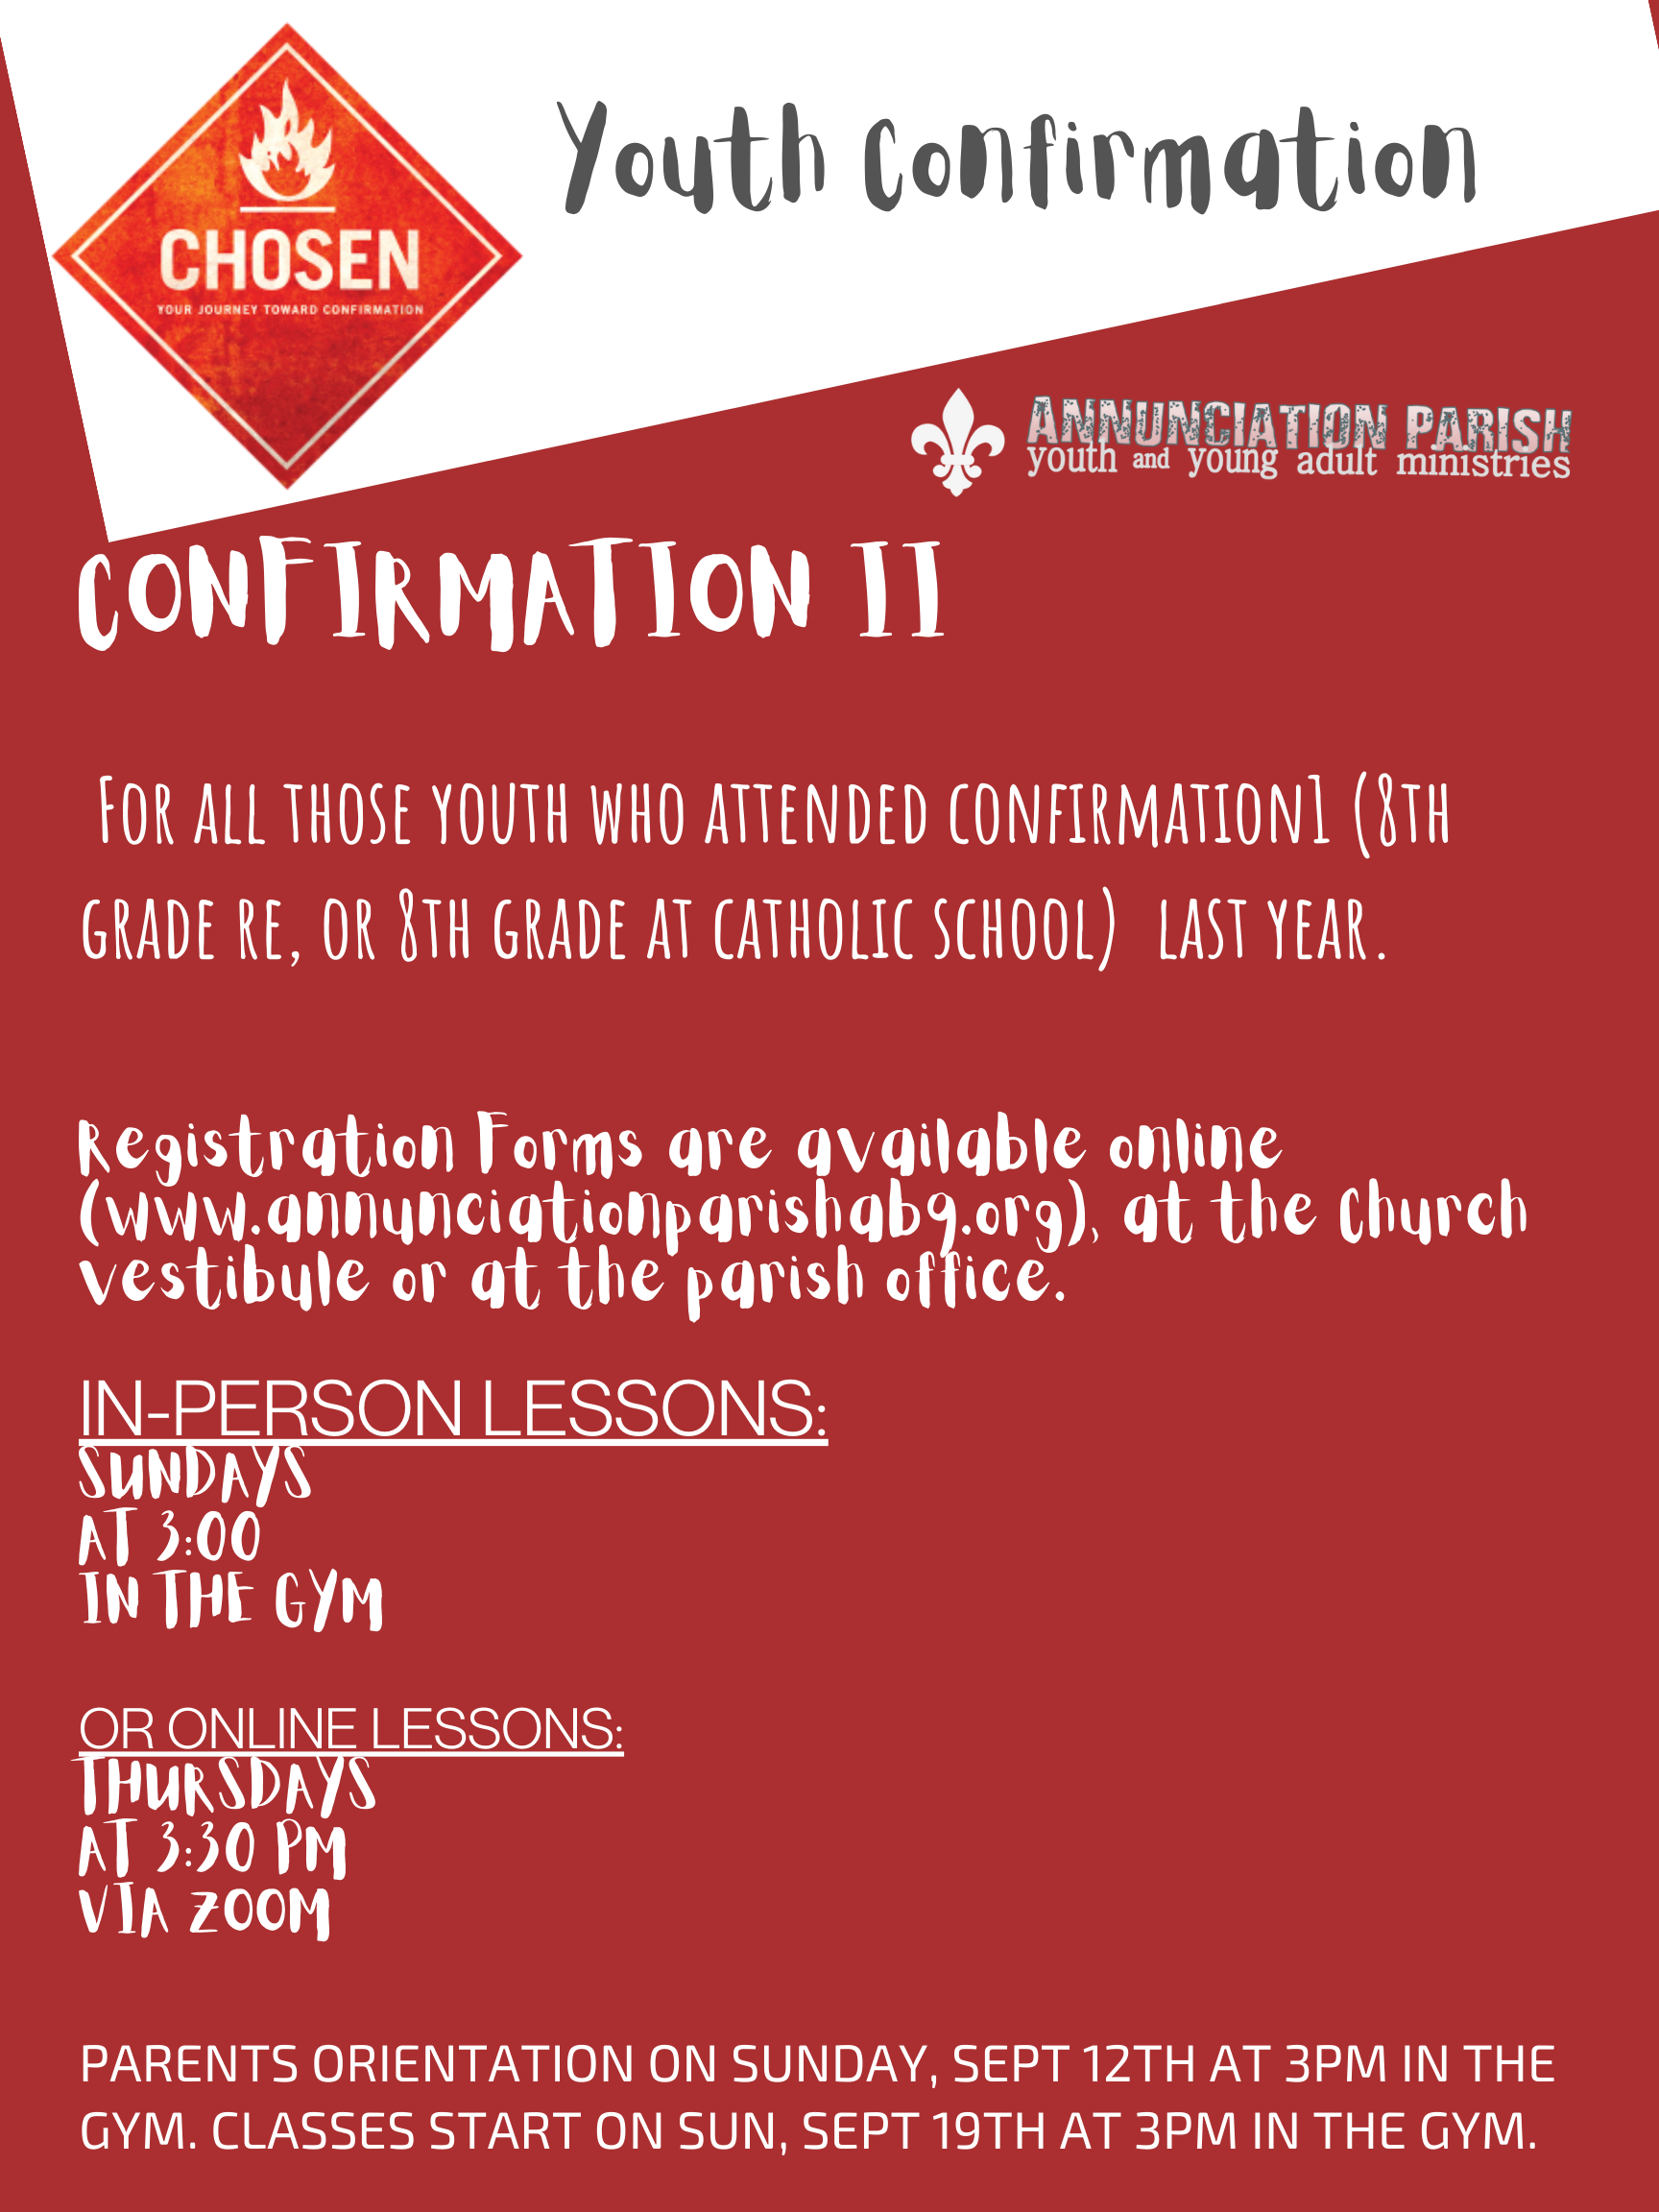 Youth Confirmation